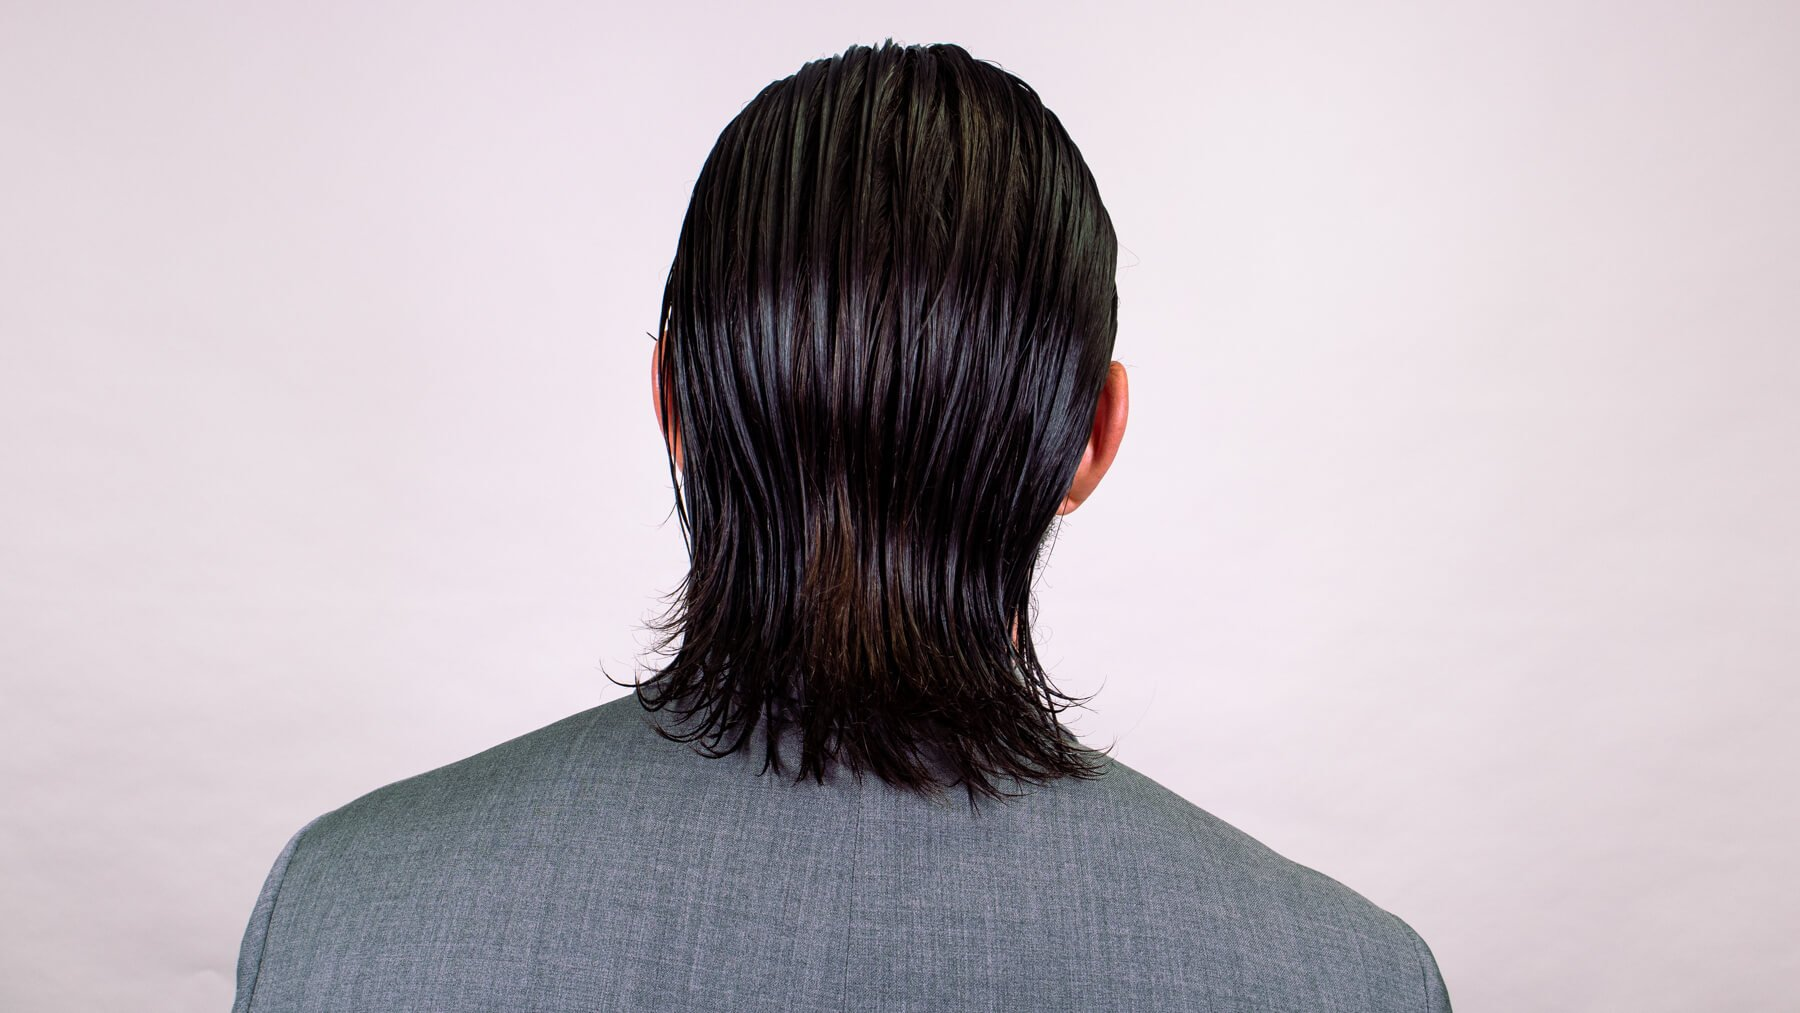 Slick back awkward stage hairstyle back view